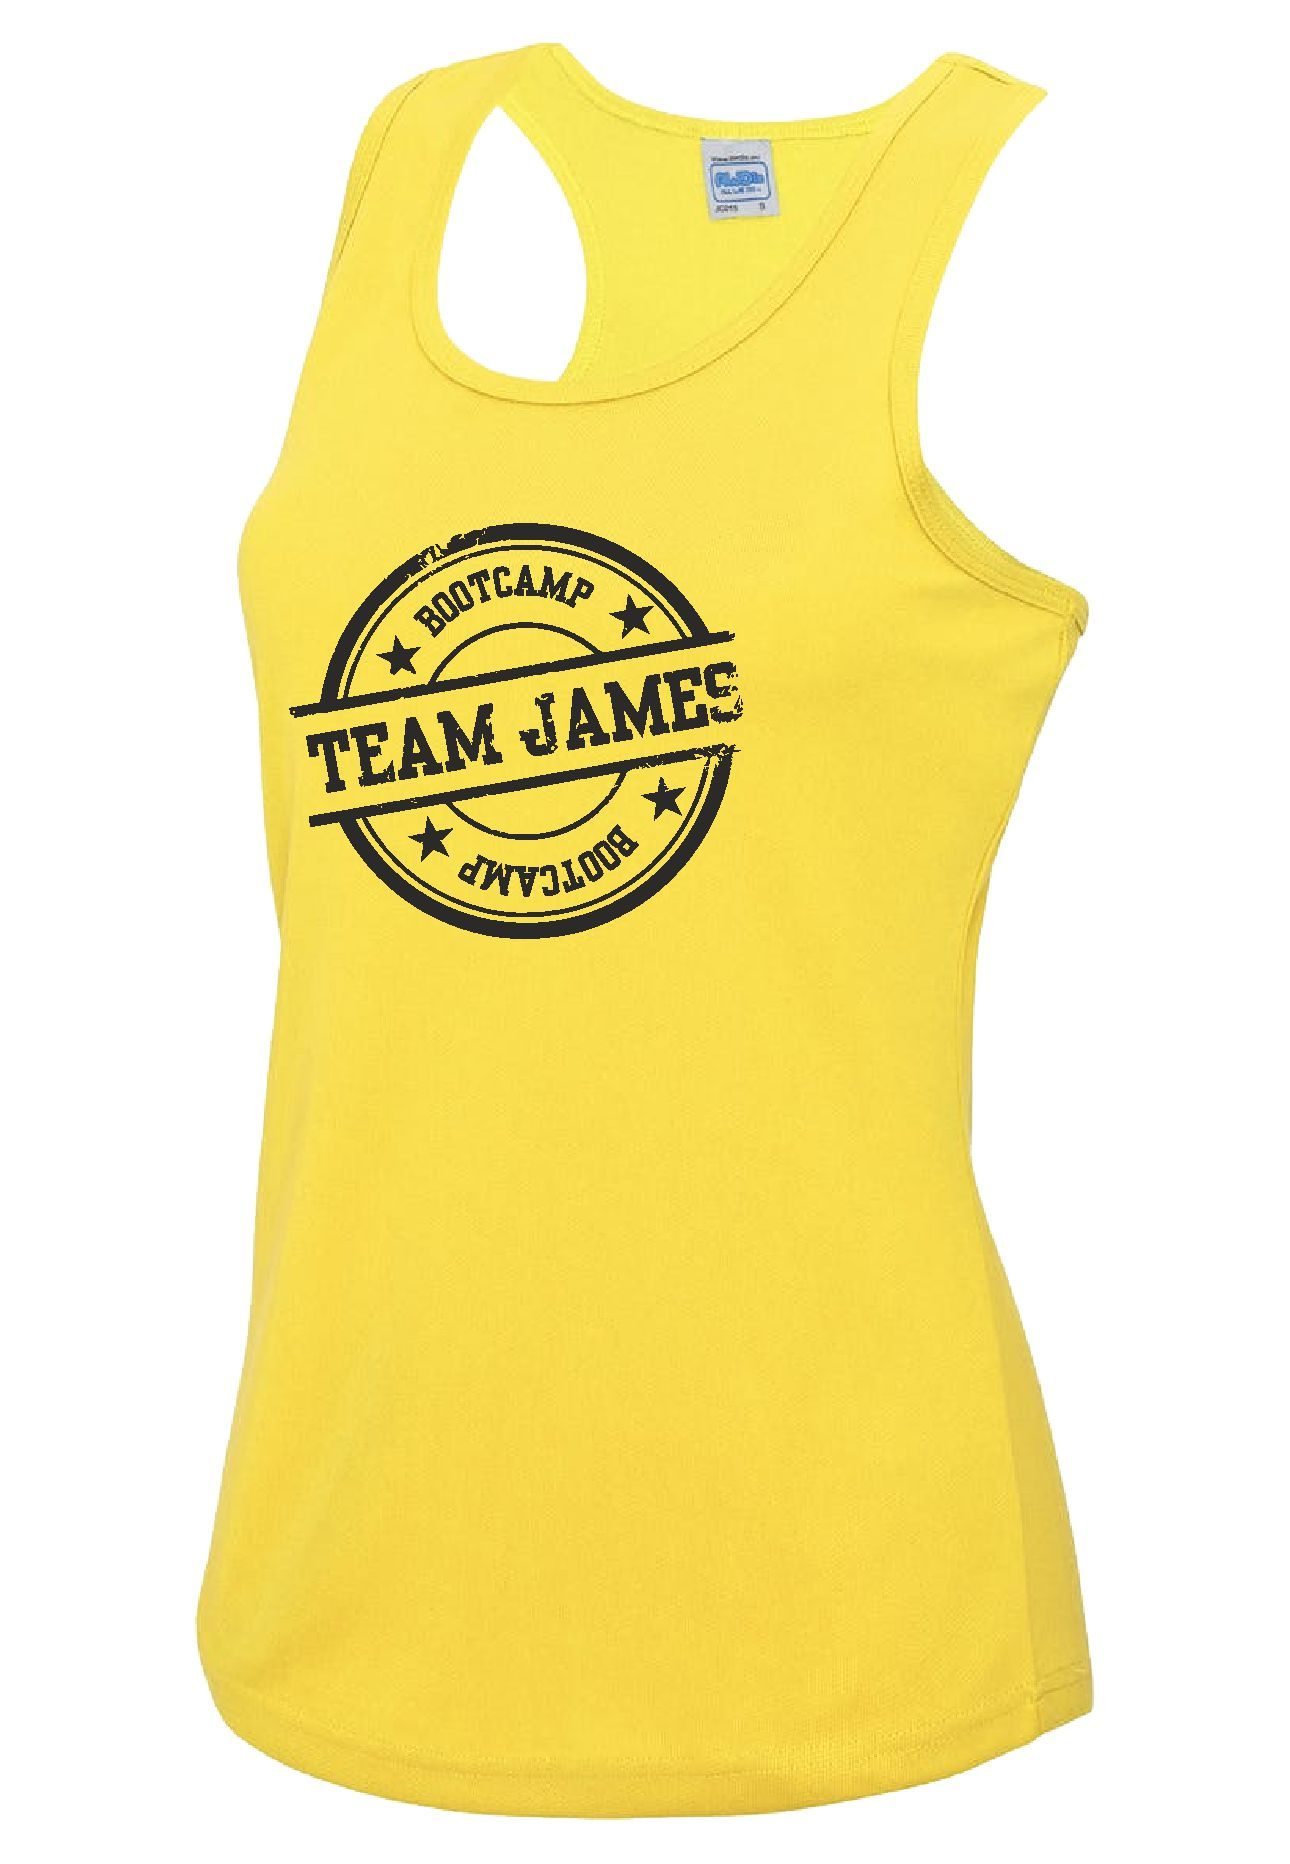 Team James - Performance Vest (Ladies)